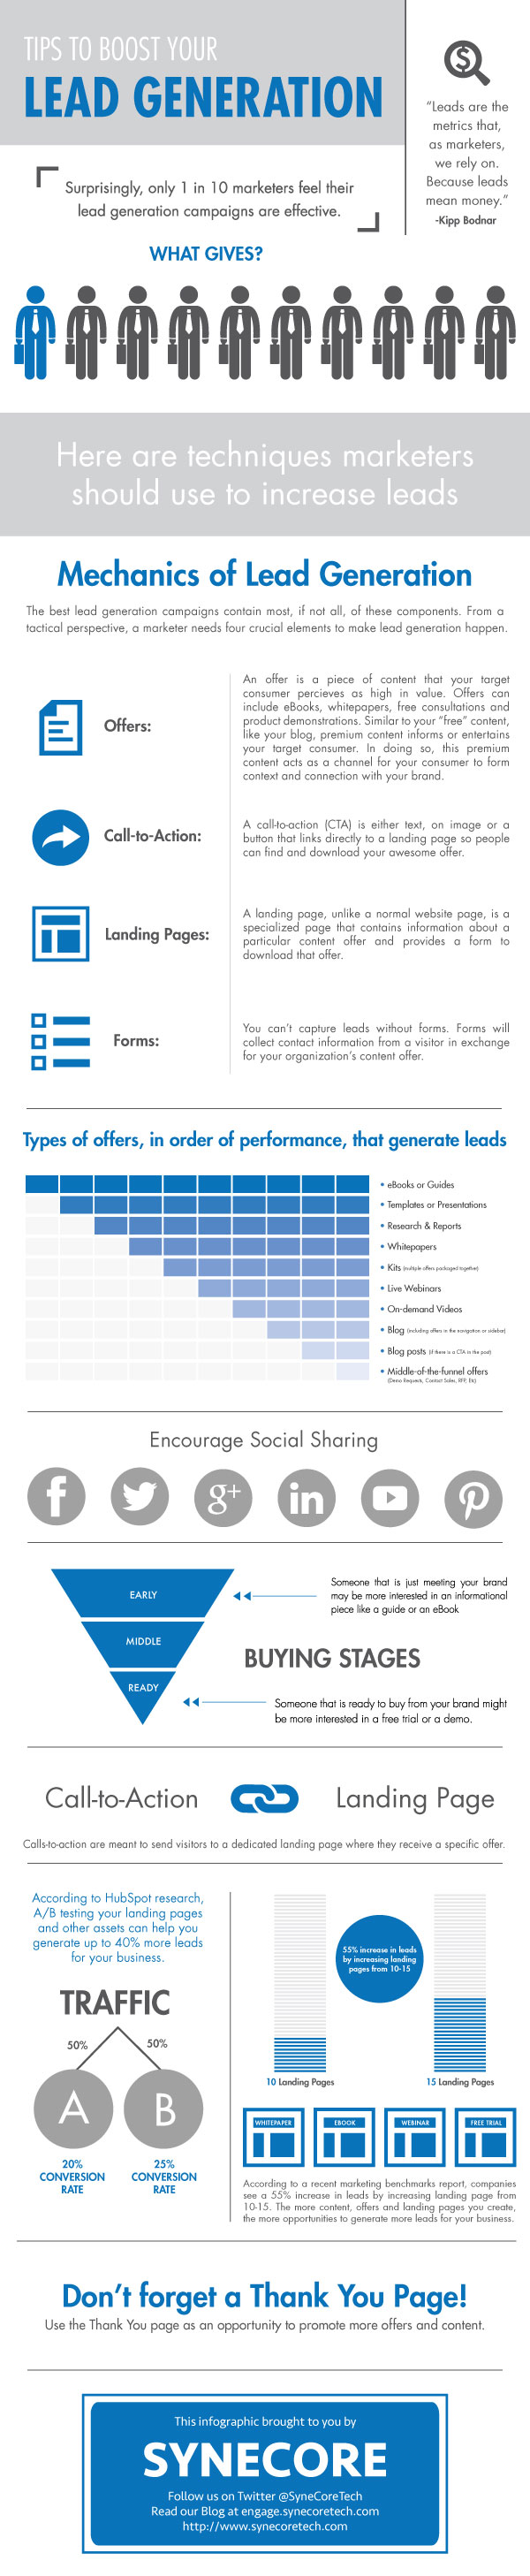 lead-gen-infographic-small_0